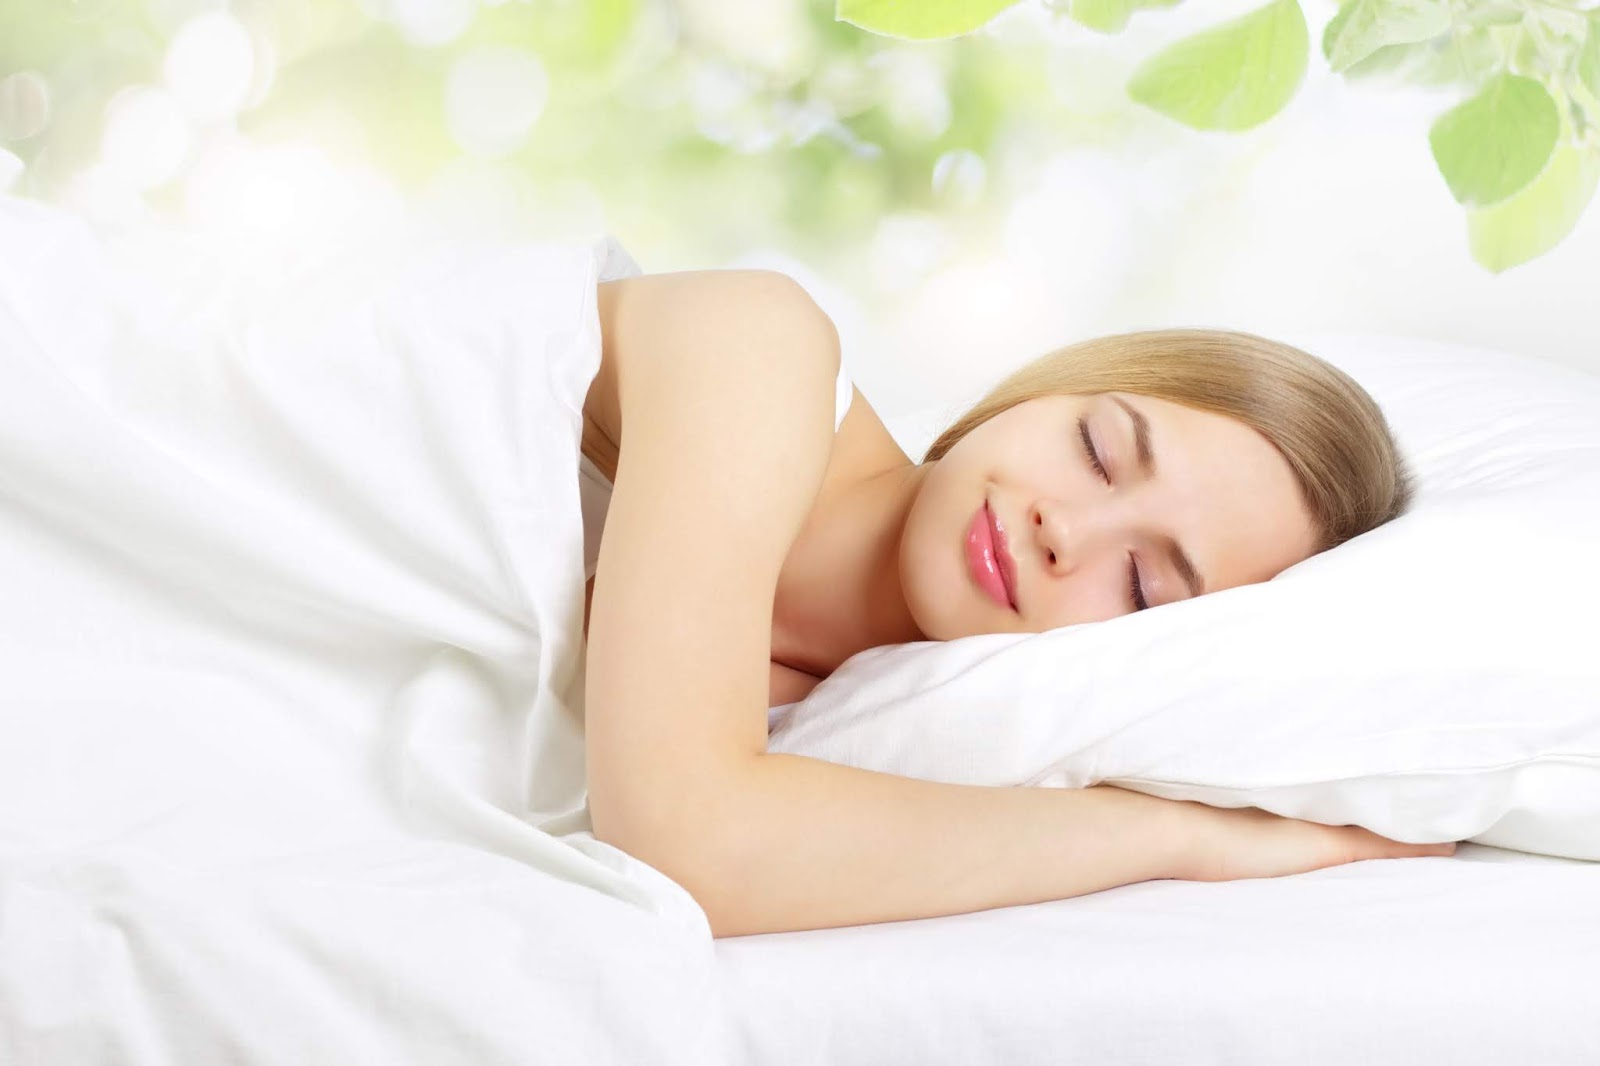 The 23 per cent who could sleep through the night without waking up were more likely than the population as a whole to describe their quality of sleep as good.